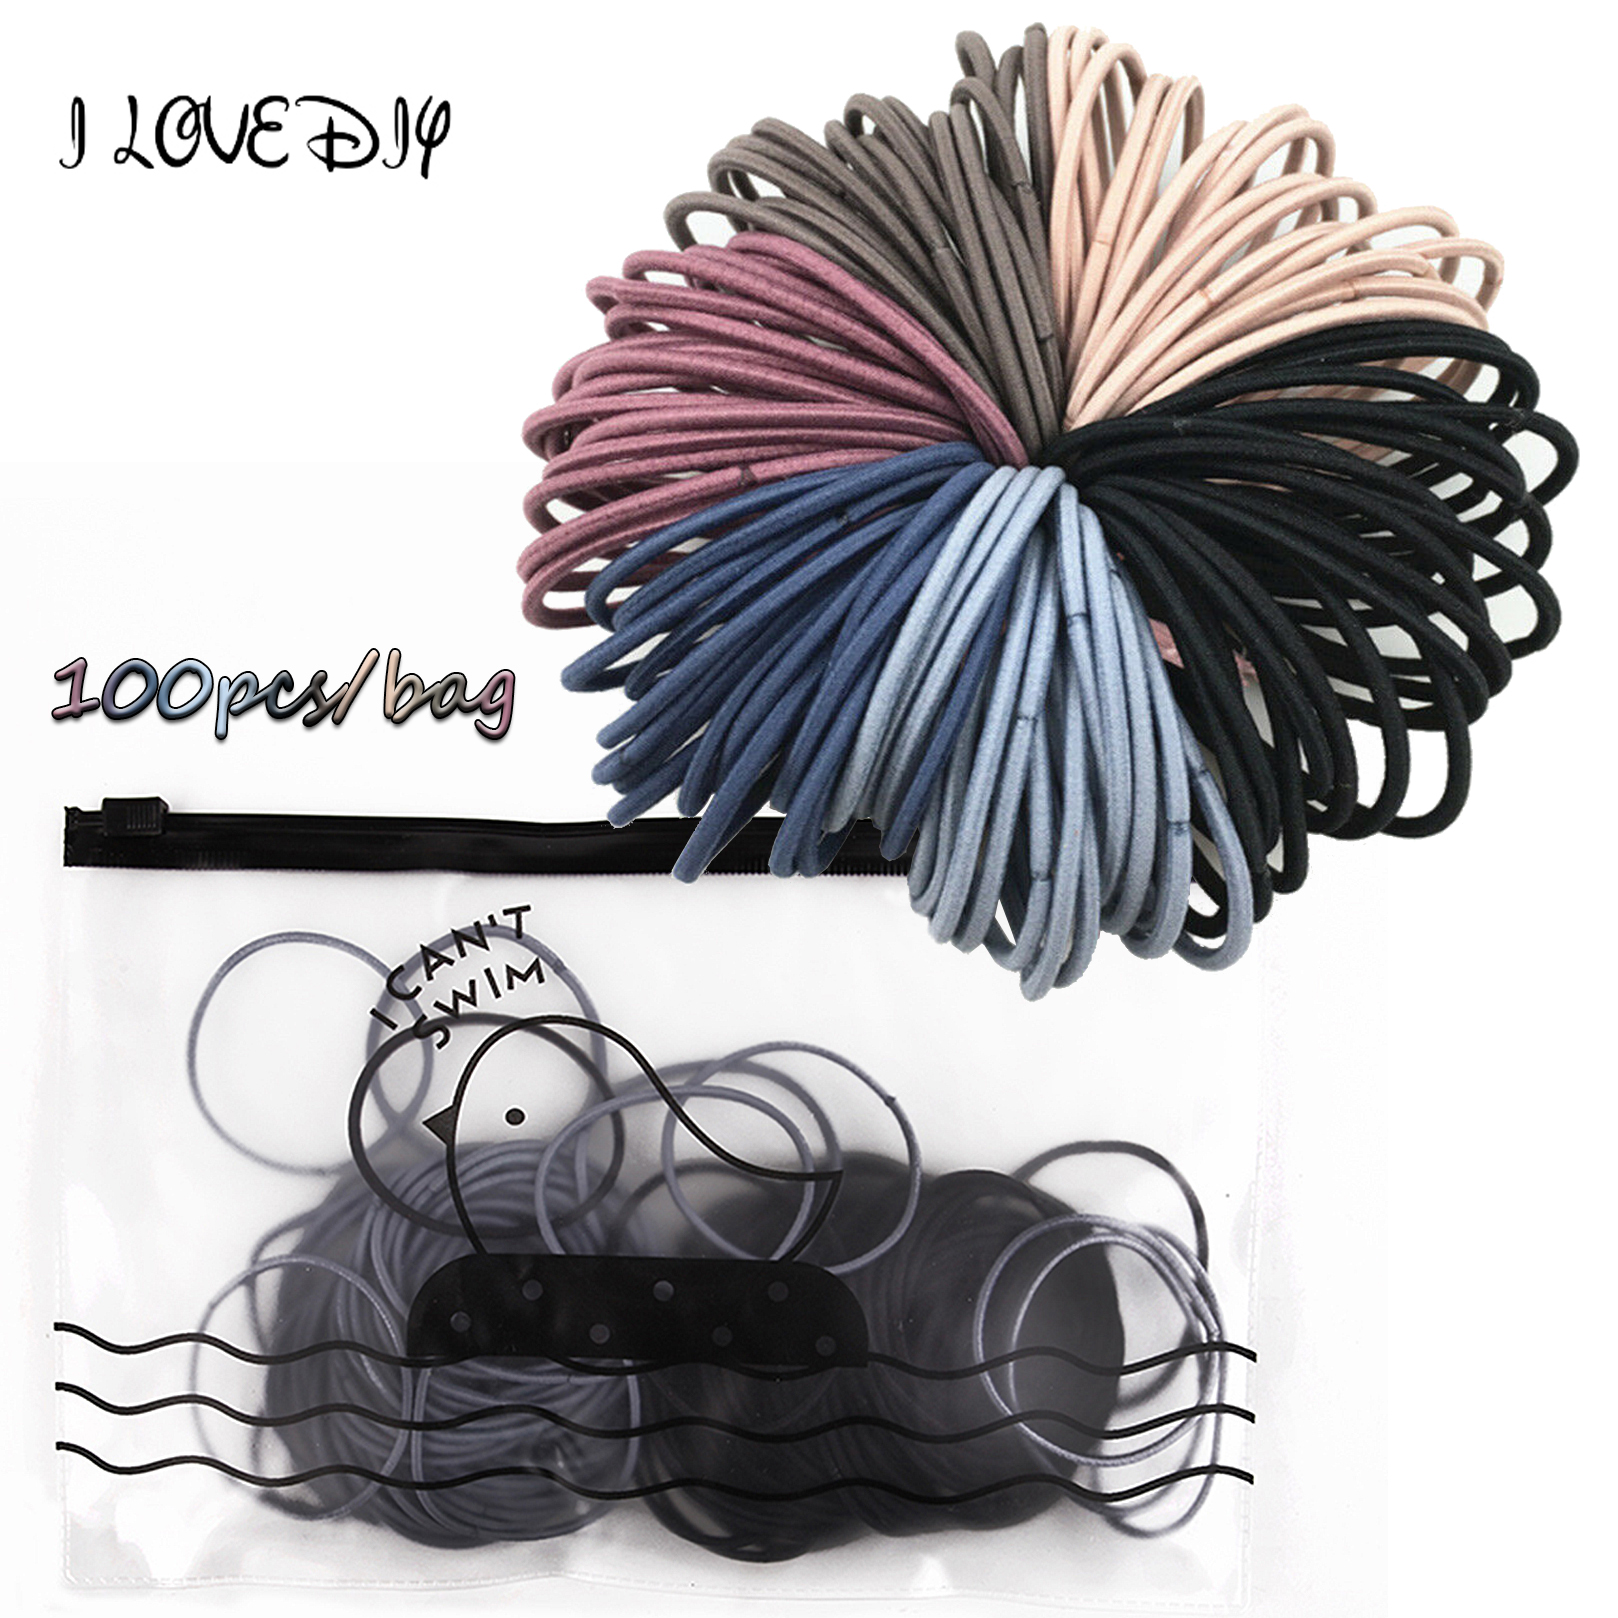 100pcs With Bag 4.5cm High Elastic Rubber Band Basic Hair Bands Scrunchies Hair Ties Gum Women Girls Baby Ponytail Holders Rope